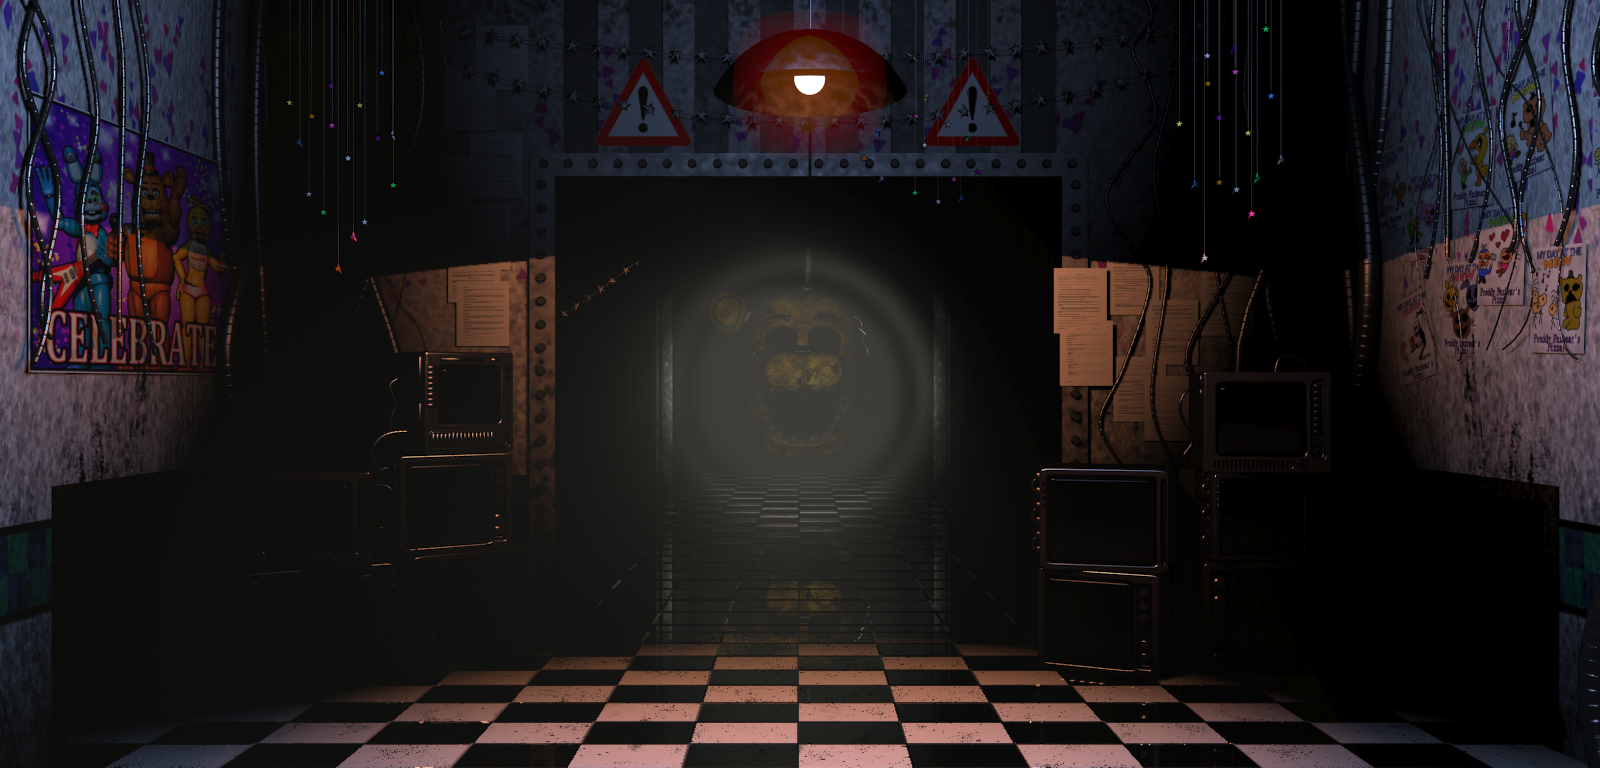 13 Rare Five Nights at Freddy's 2 Screens You May Not Have Seen